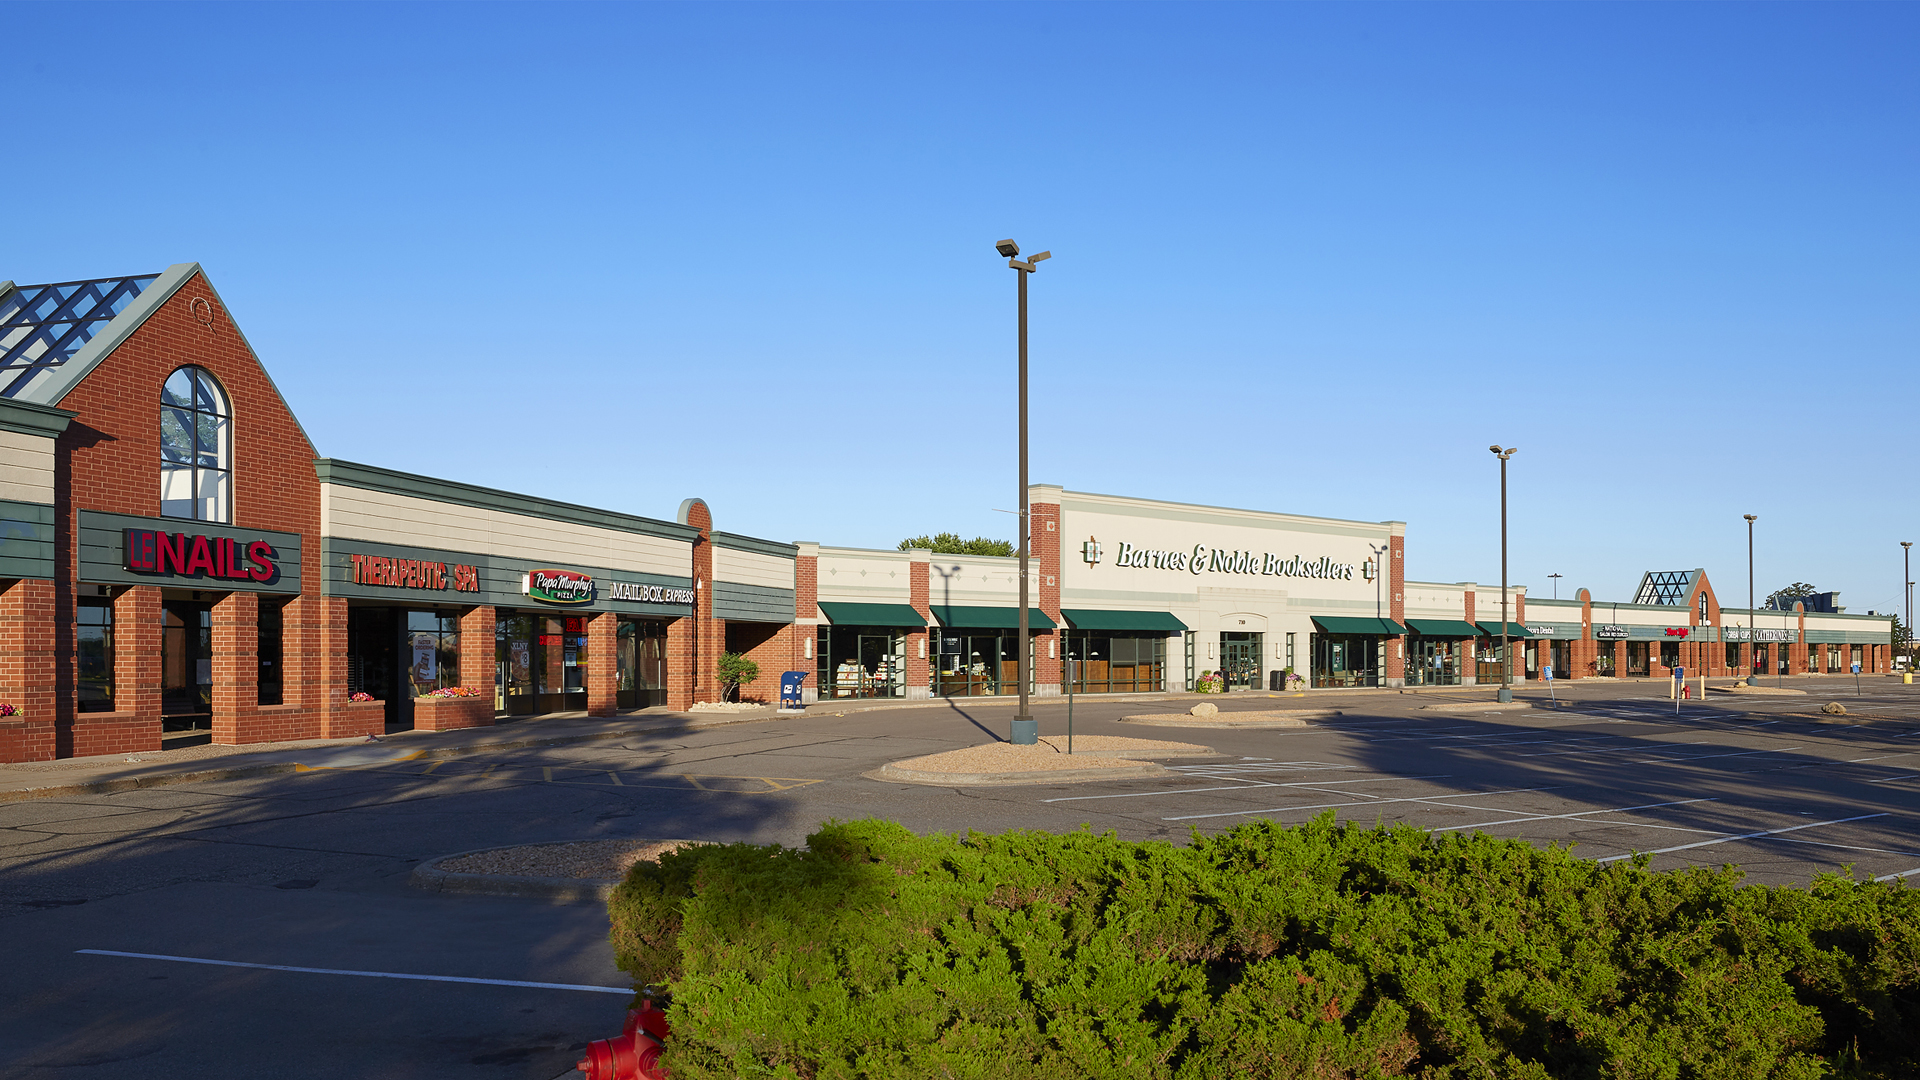 Northcourt Commons Retail Shopping Center Blaine MN exterior view